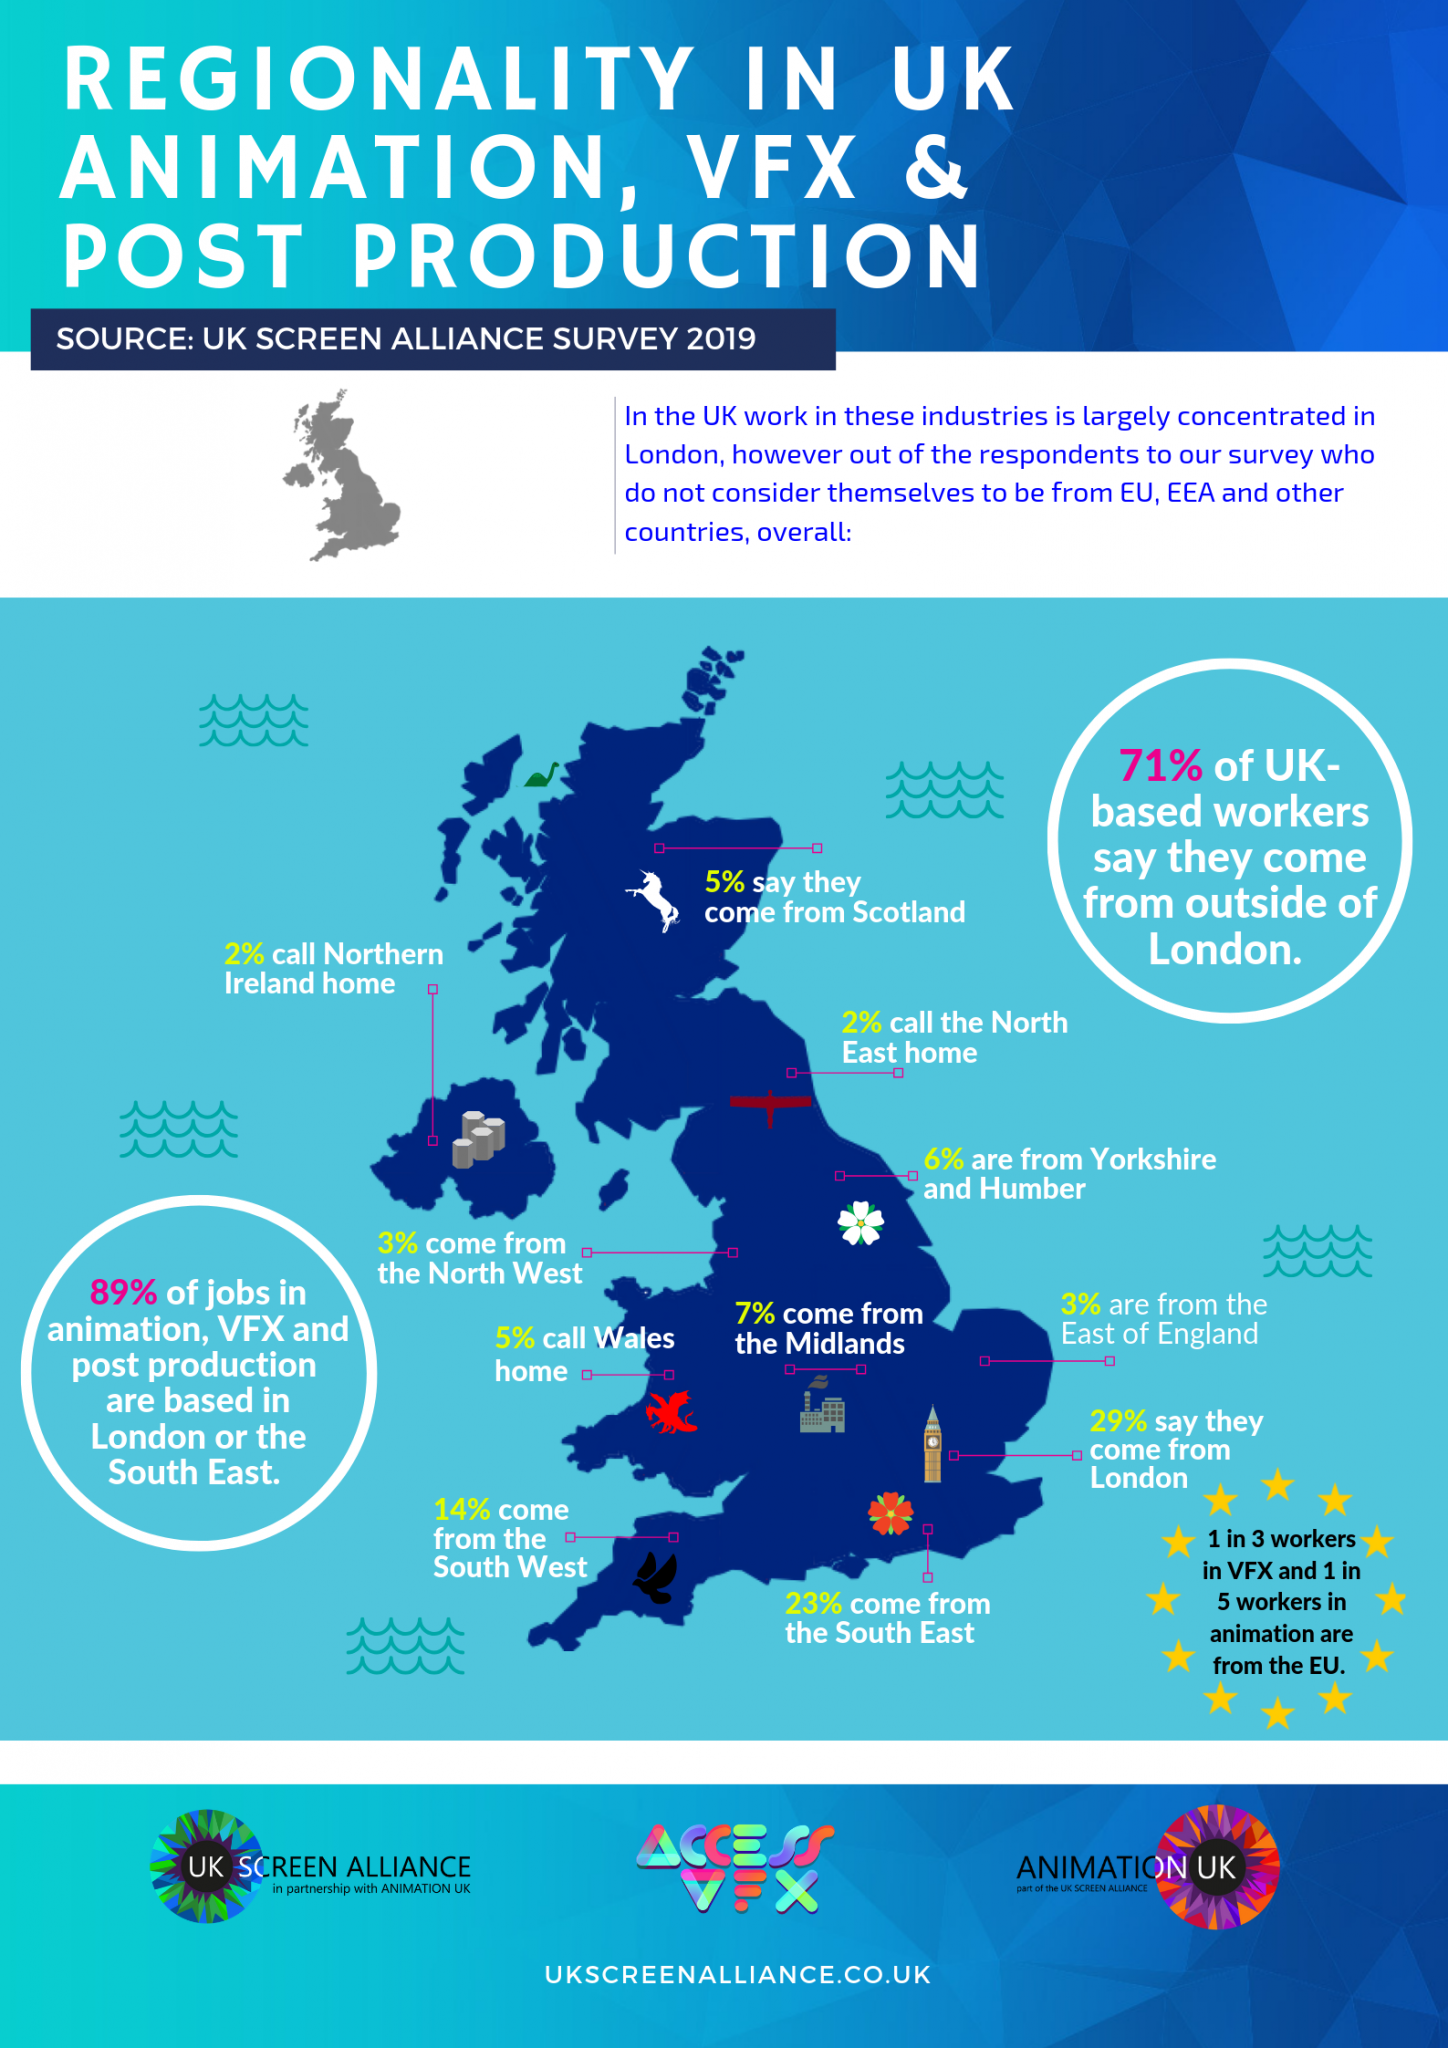 Regionality in Animation VFX & Post production infographic